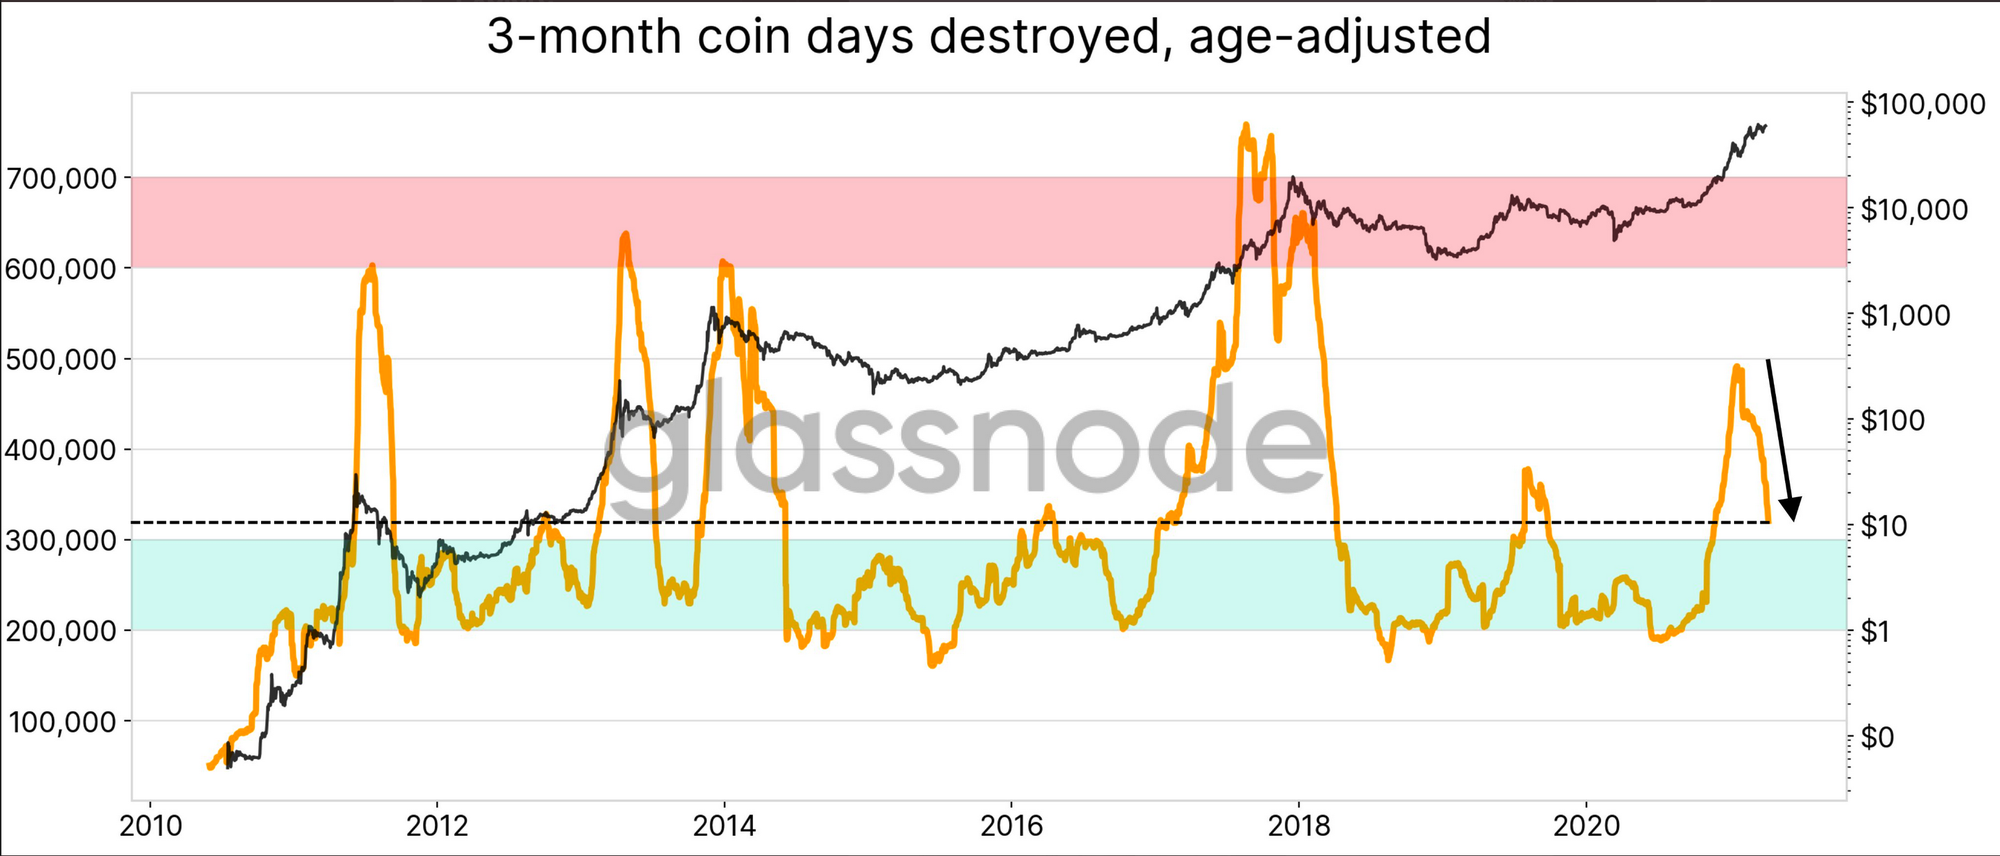 bitcoin 3 month coin days destroyed